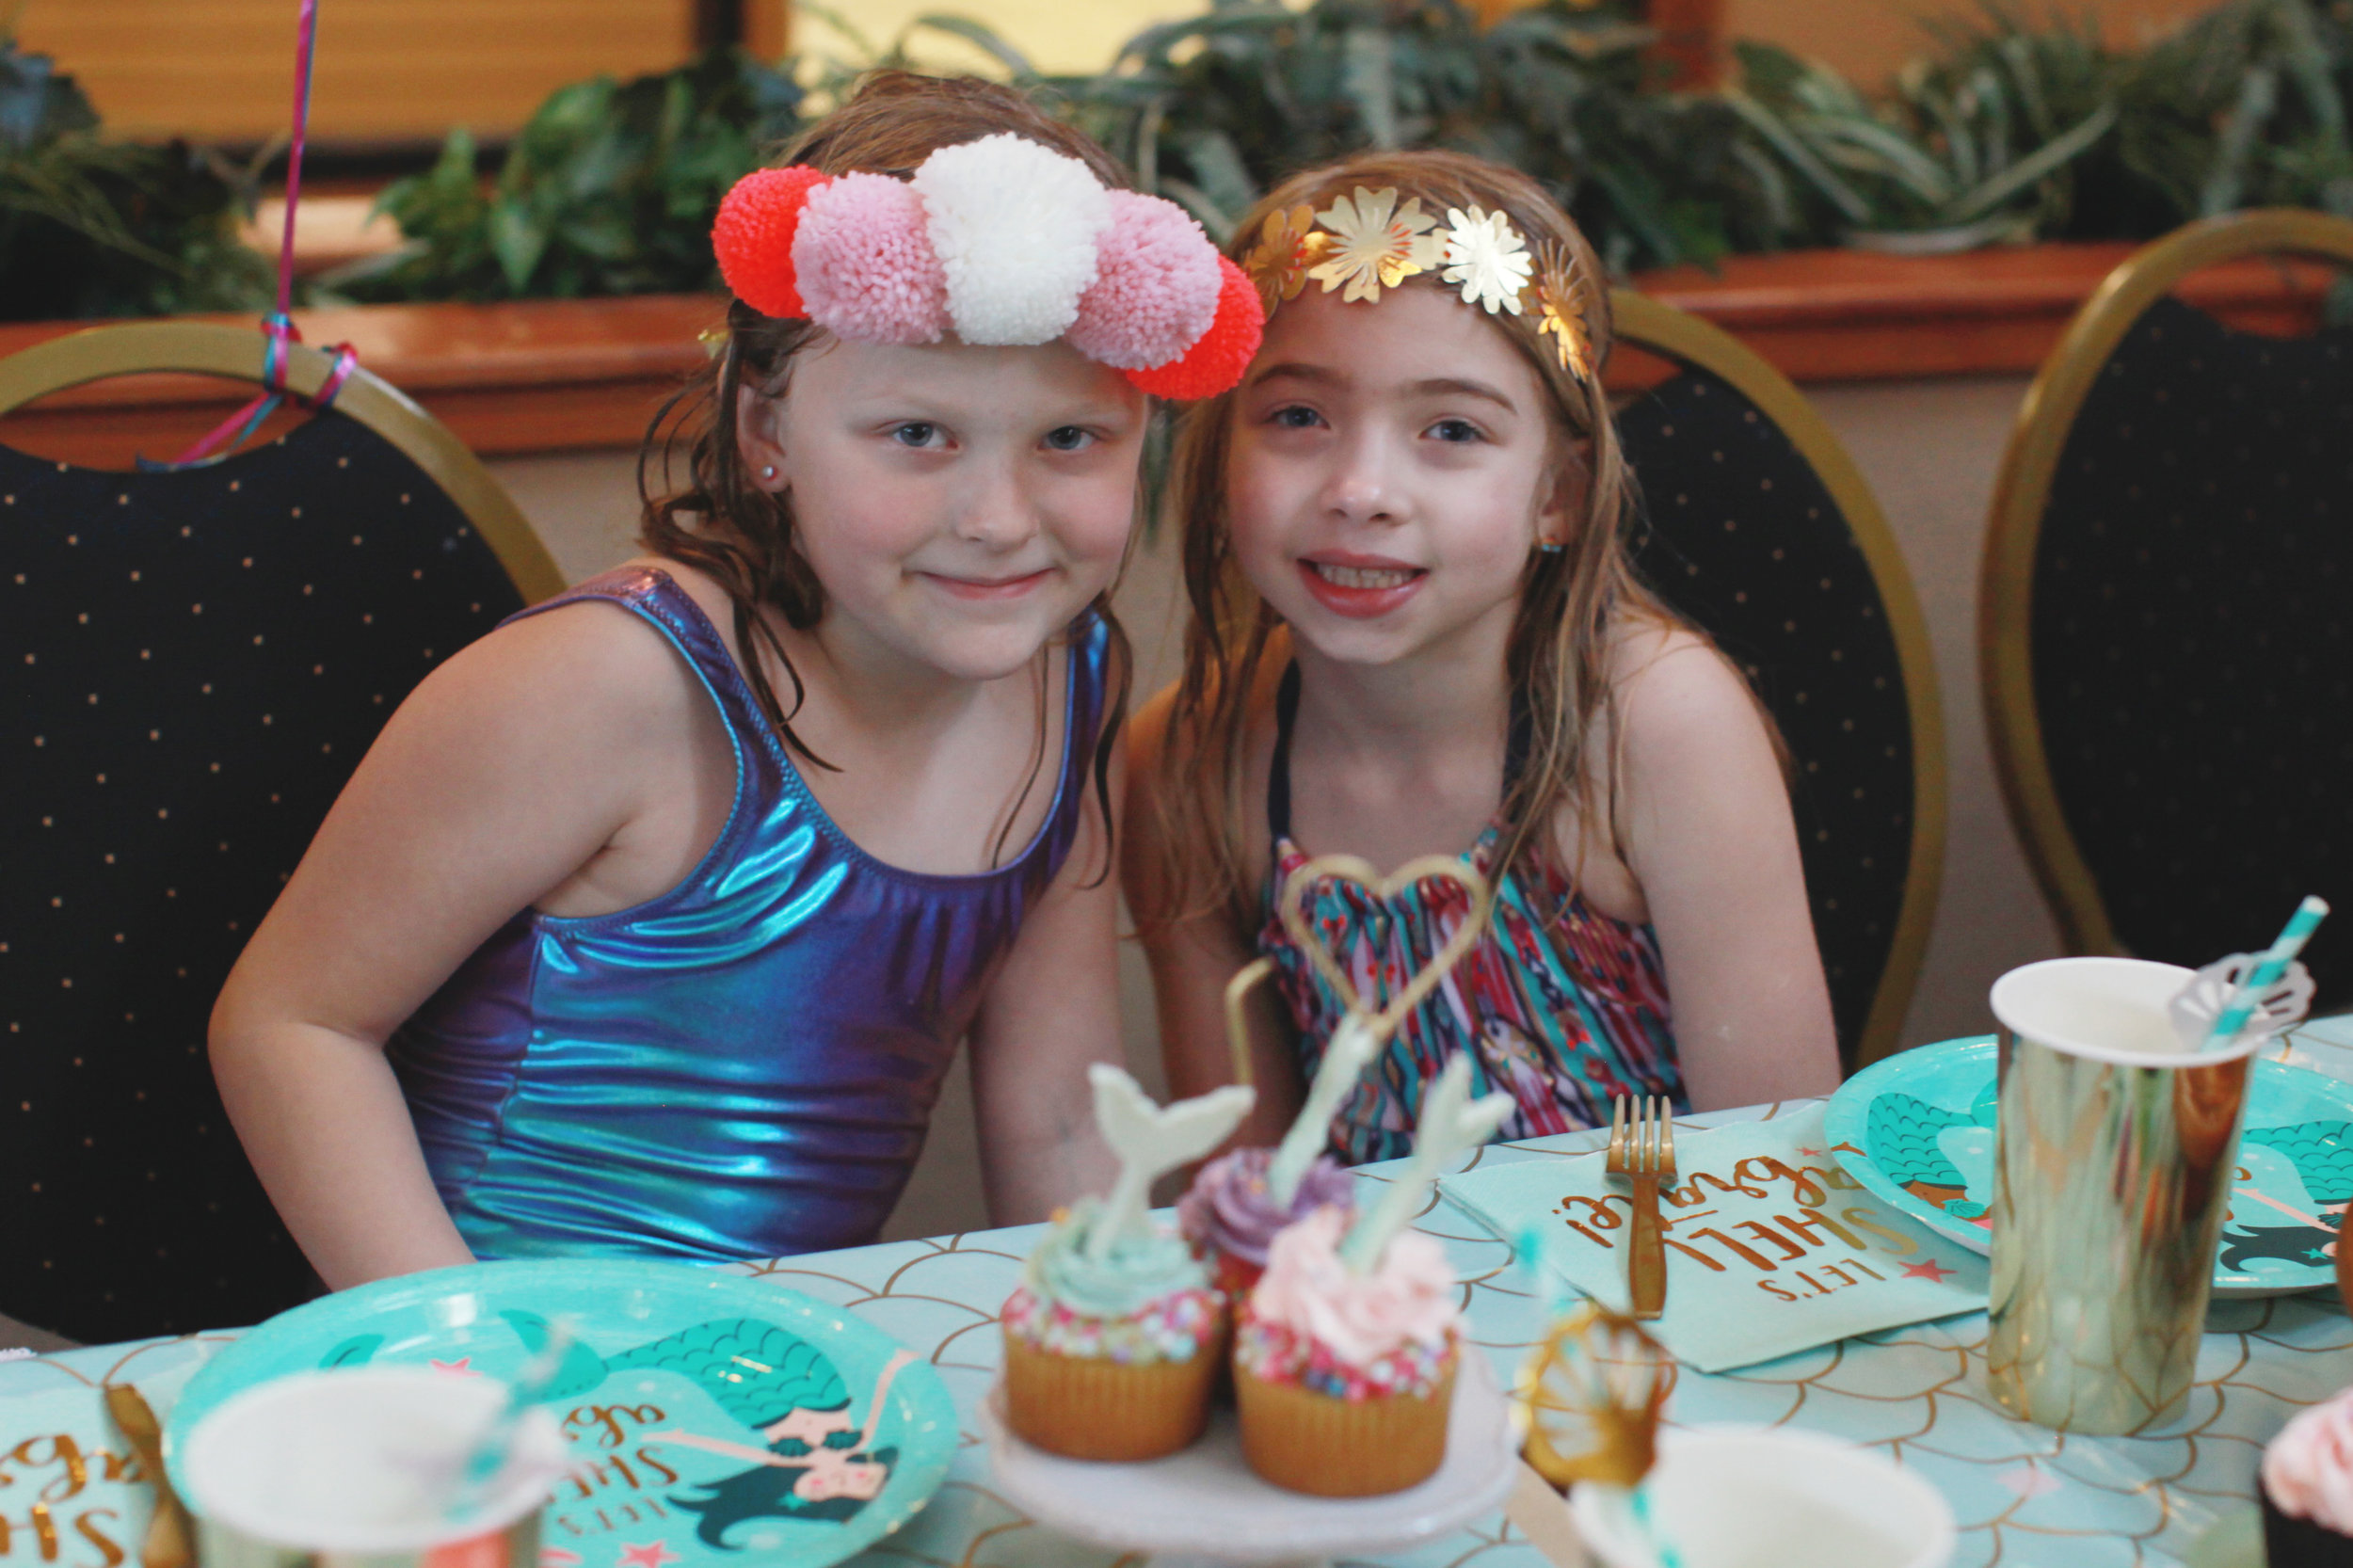 Mermaid Theme Birthday Party for Kids